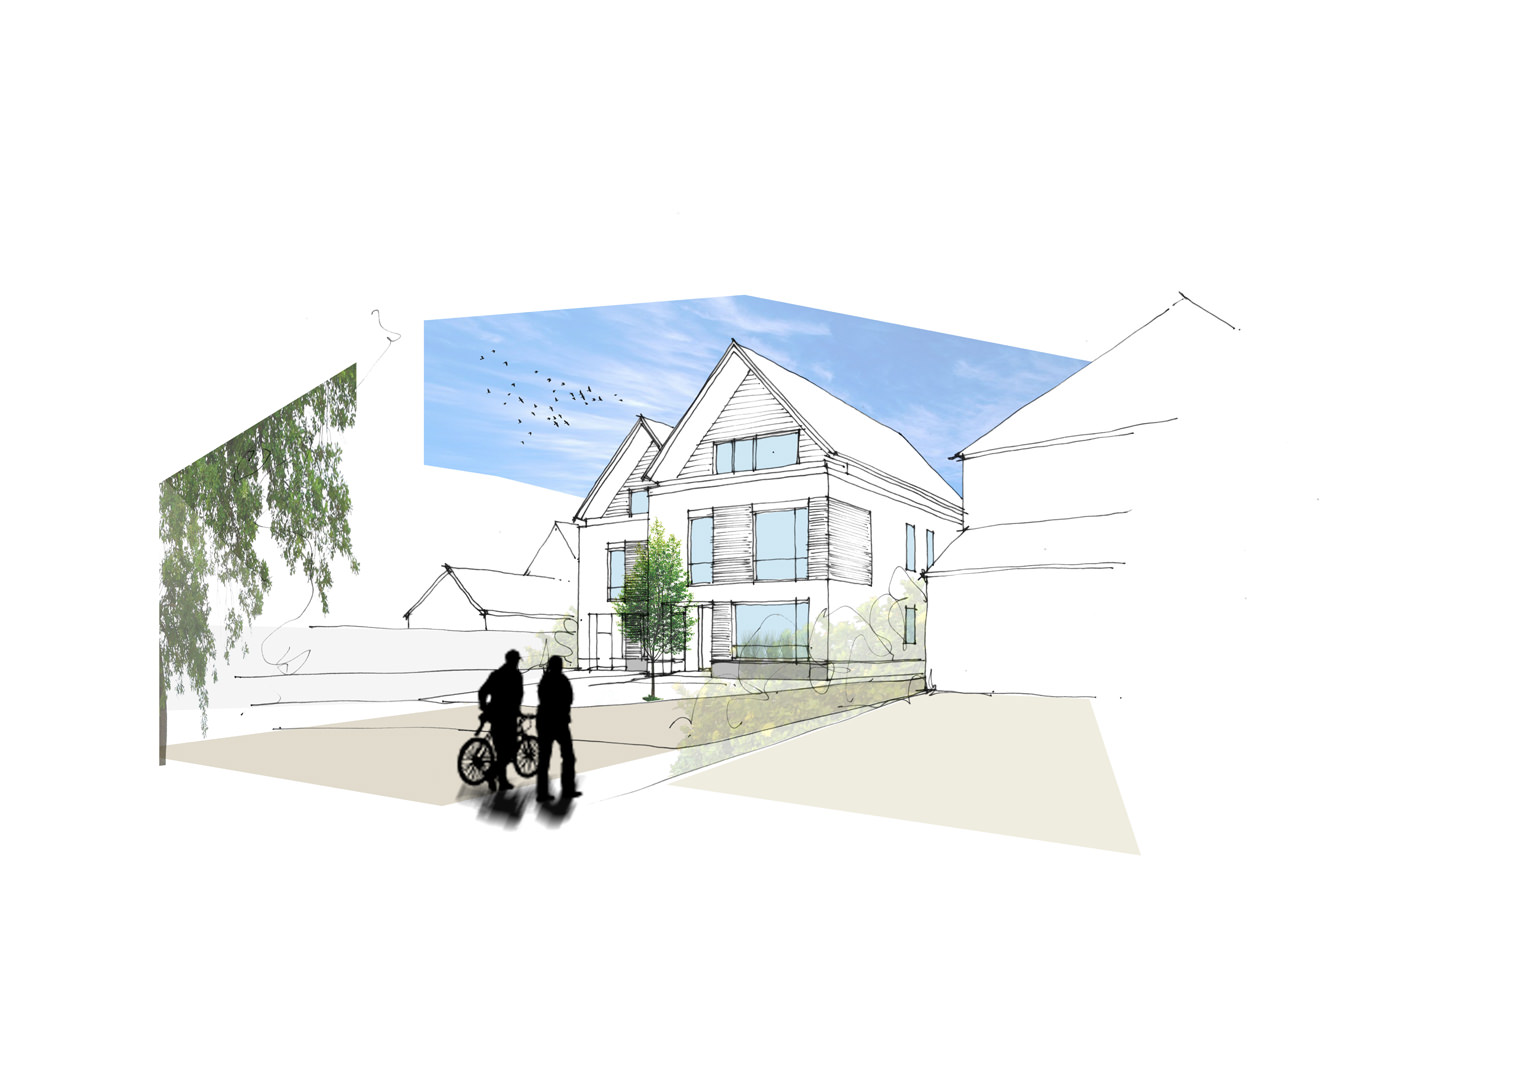 Two new 4 bedroom bespoke homes have been successfully granted planning approval in a beautiful village setting in Bedfordshire